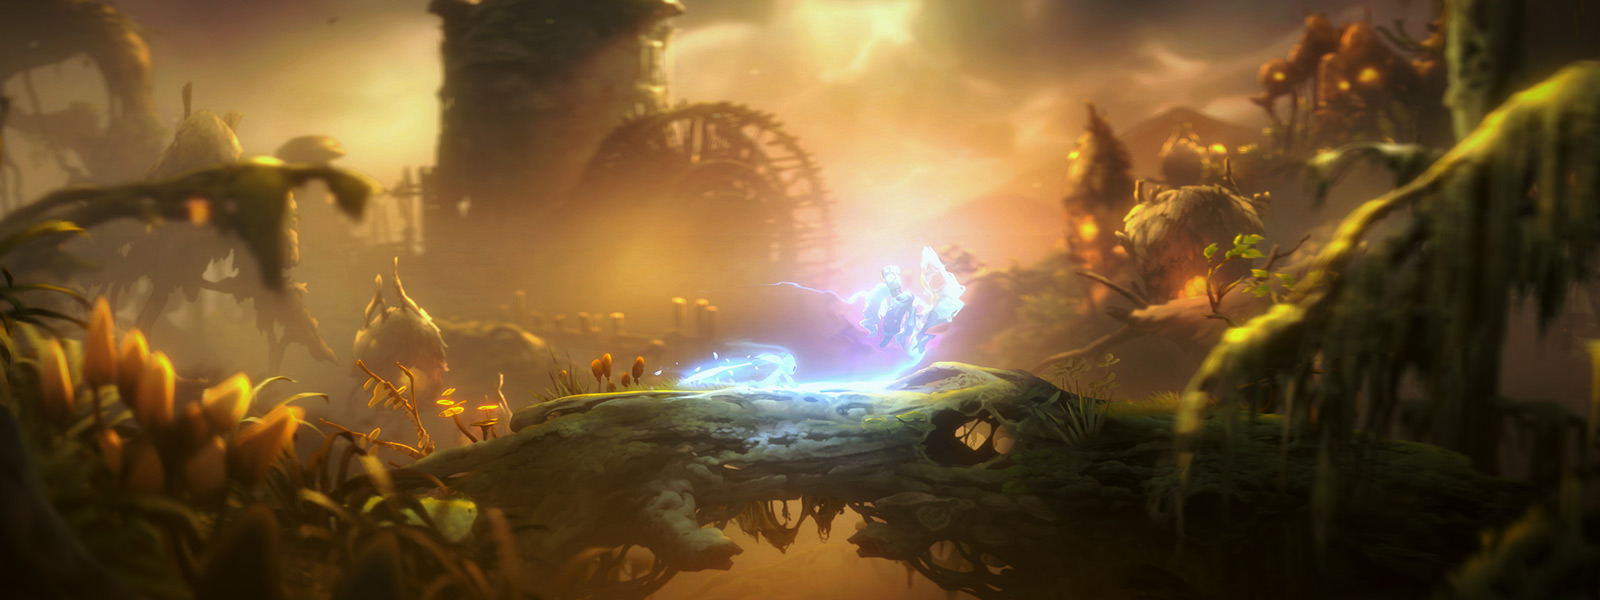 Ori and the Will of the Wisps 스크린샷